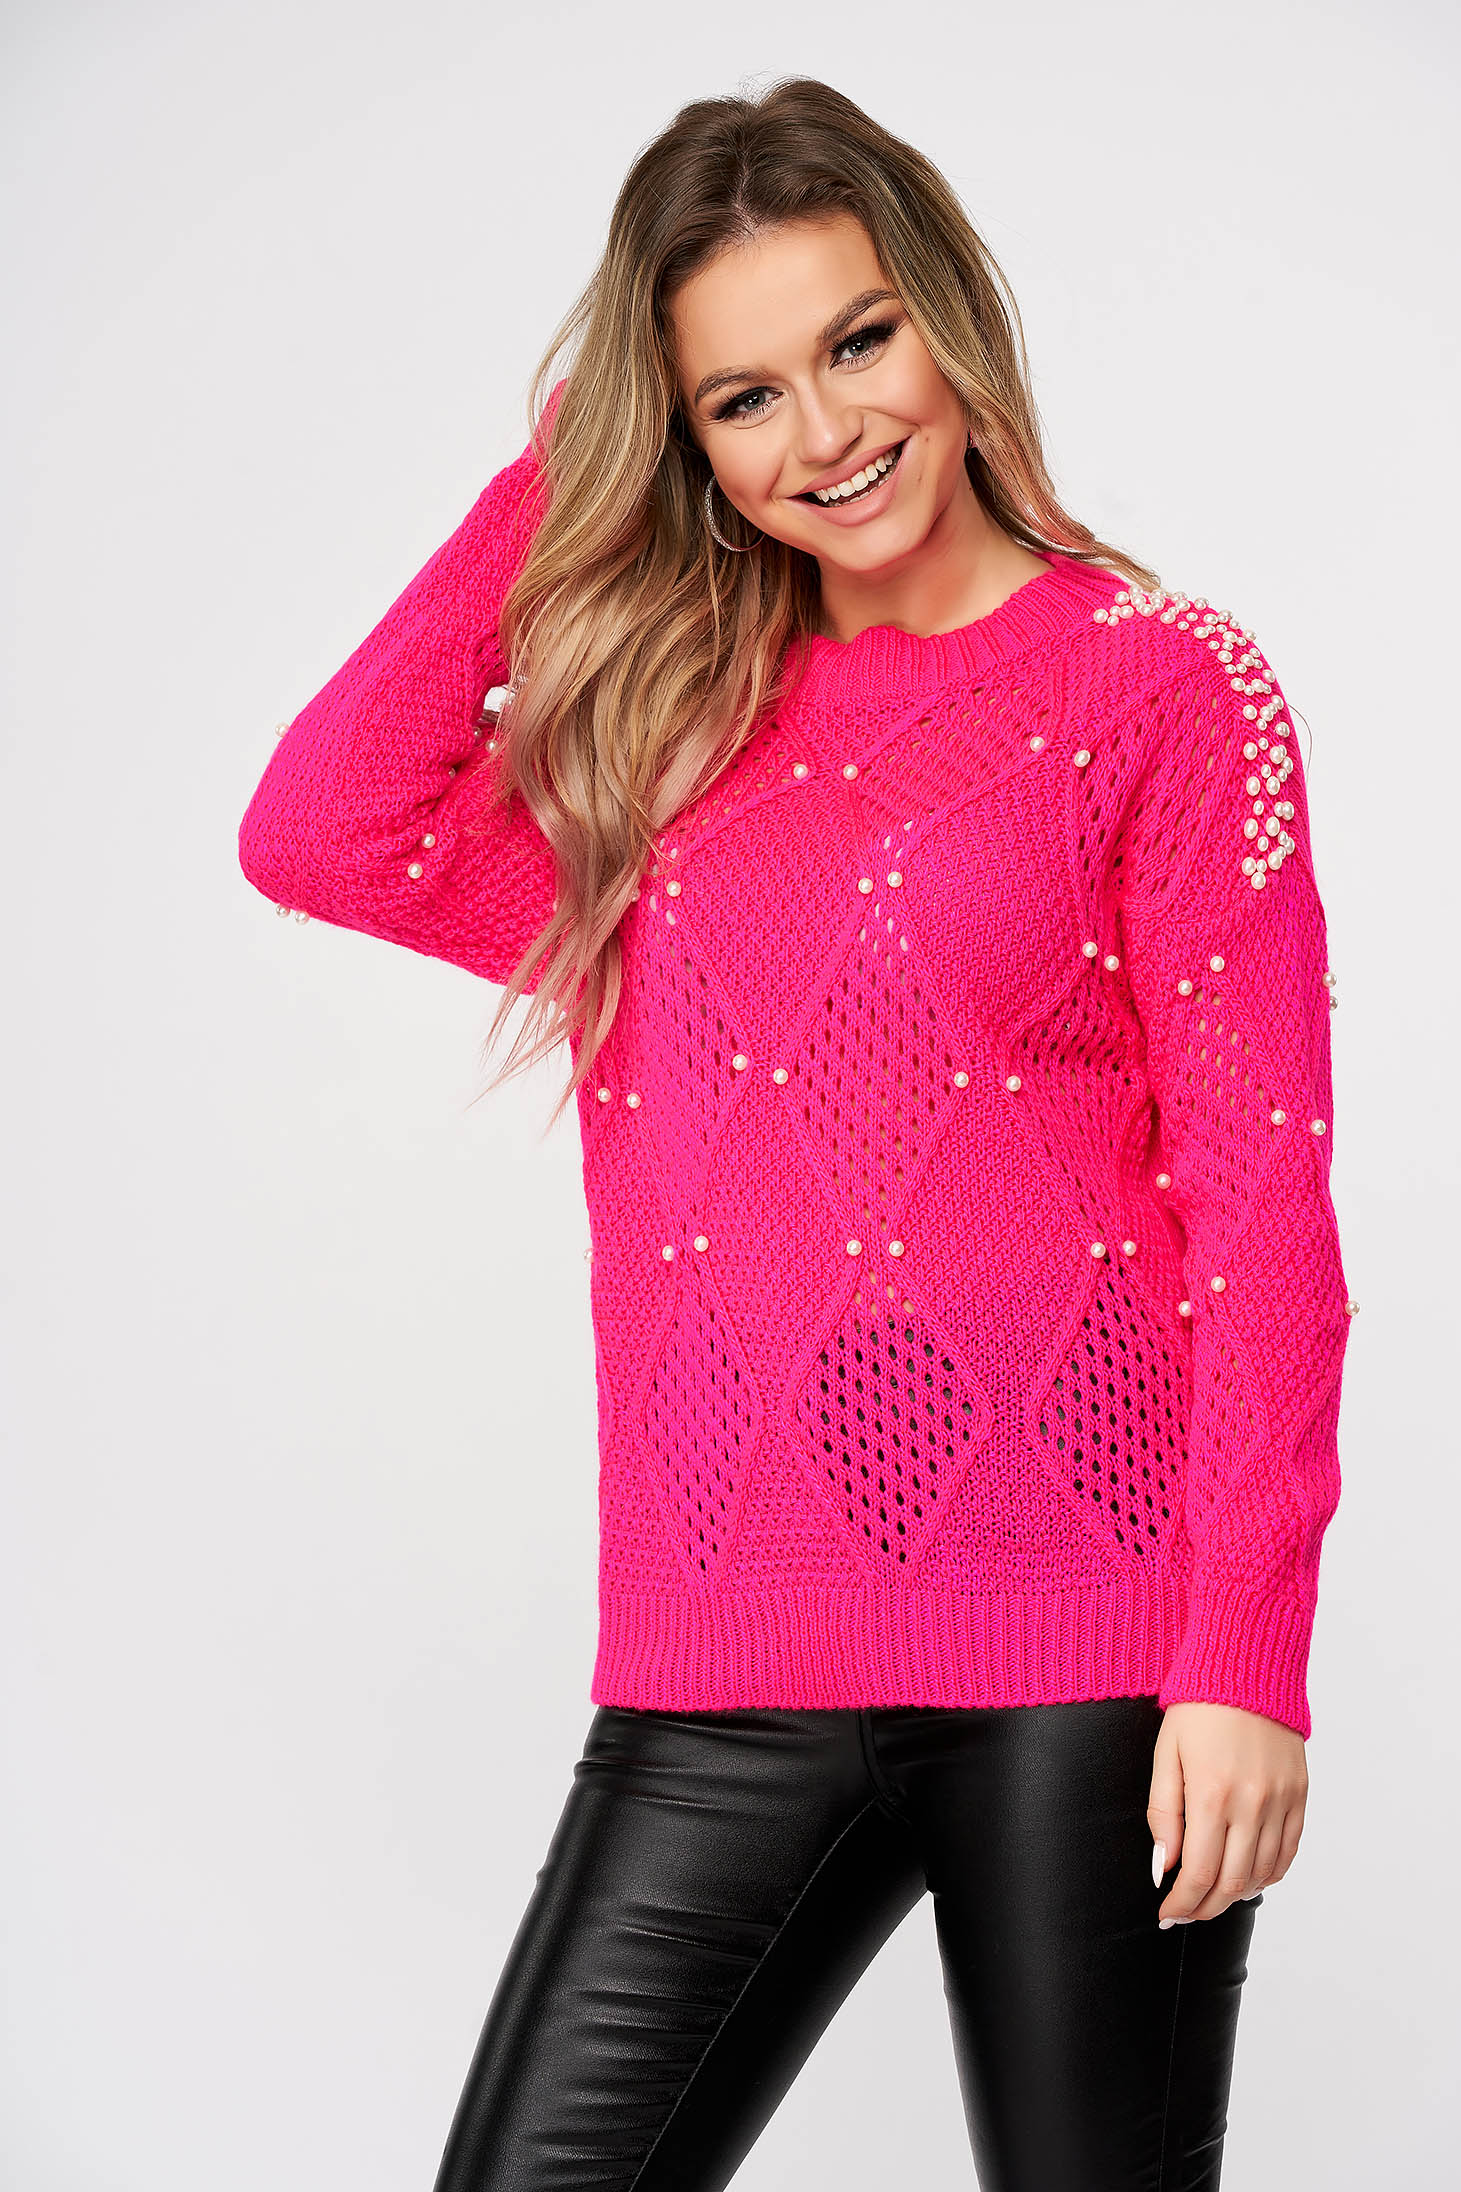 Pink sweater casual knitted flared with pearls